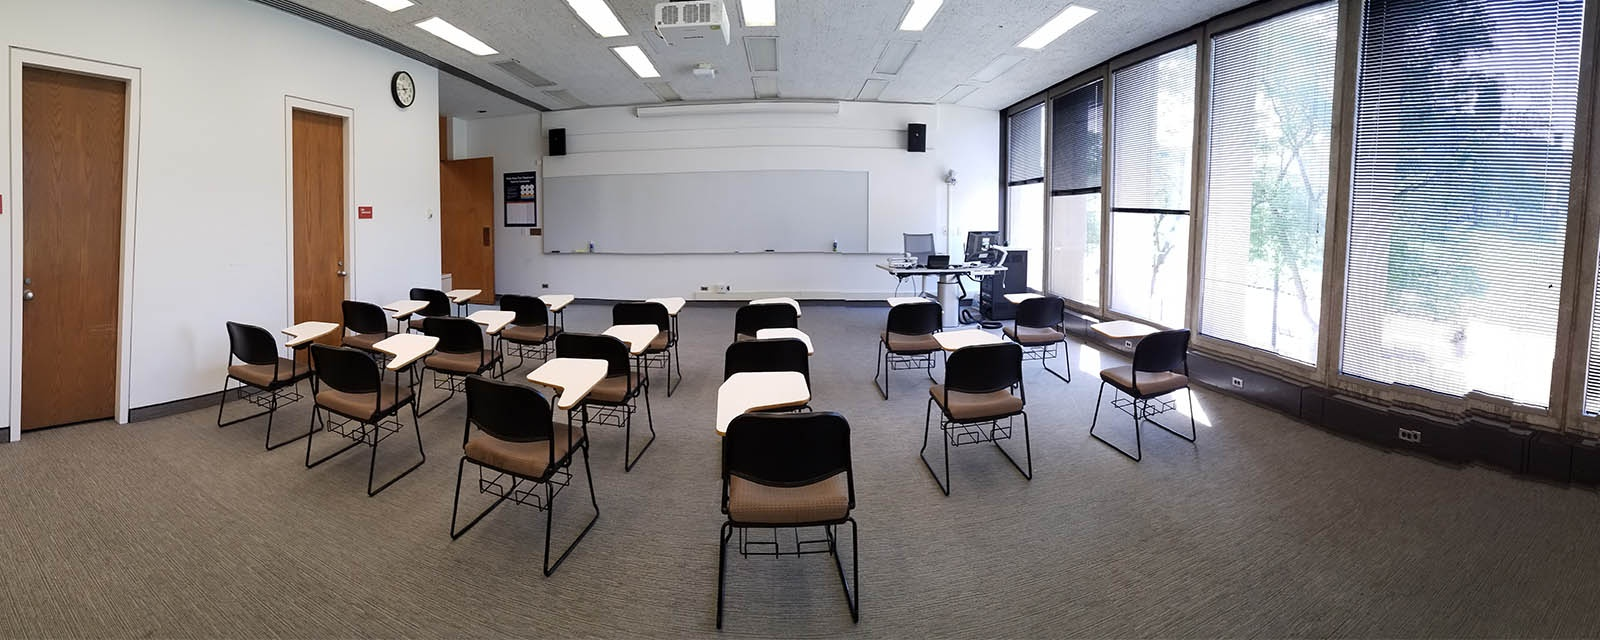 Panorama room 406 student view, movable chairs, teaching station front left